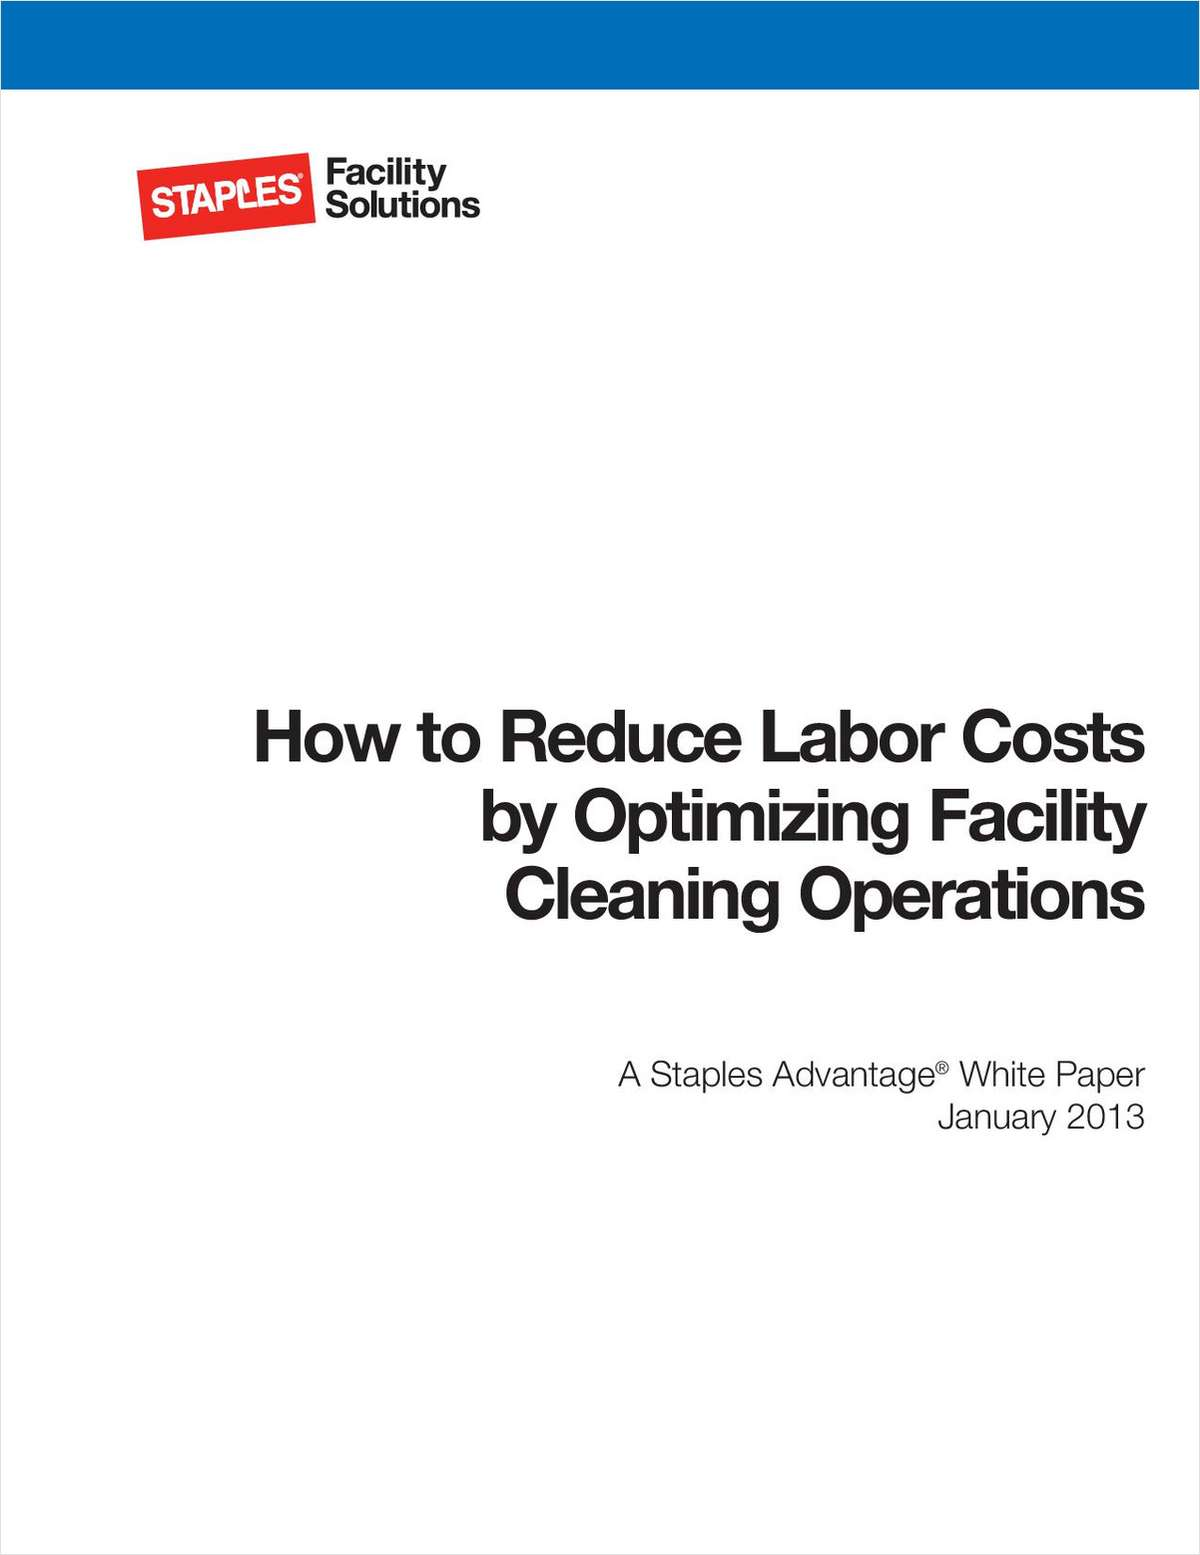 An Expert's Guide to Reducing Labor Costs at Your Facility